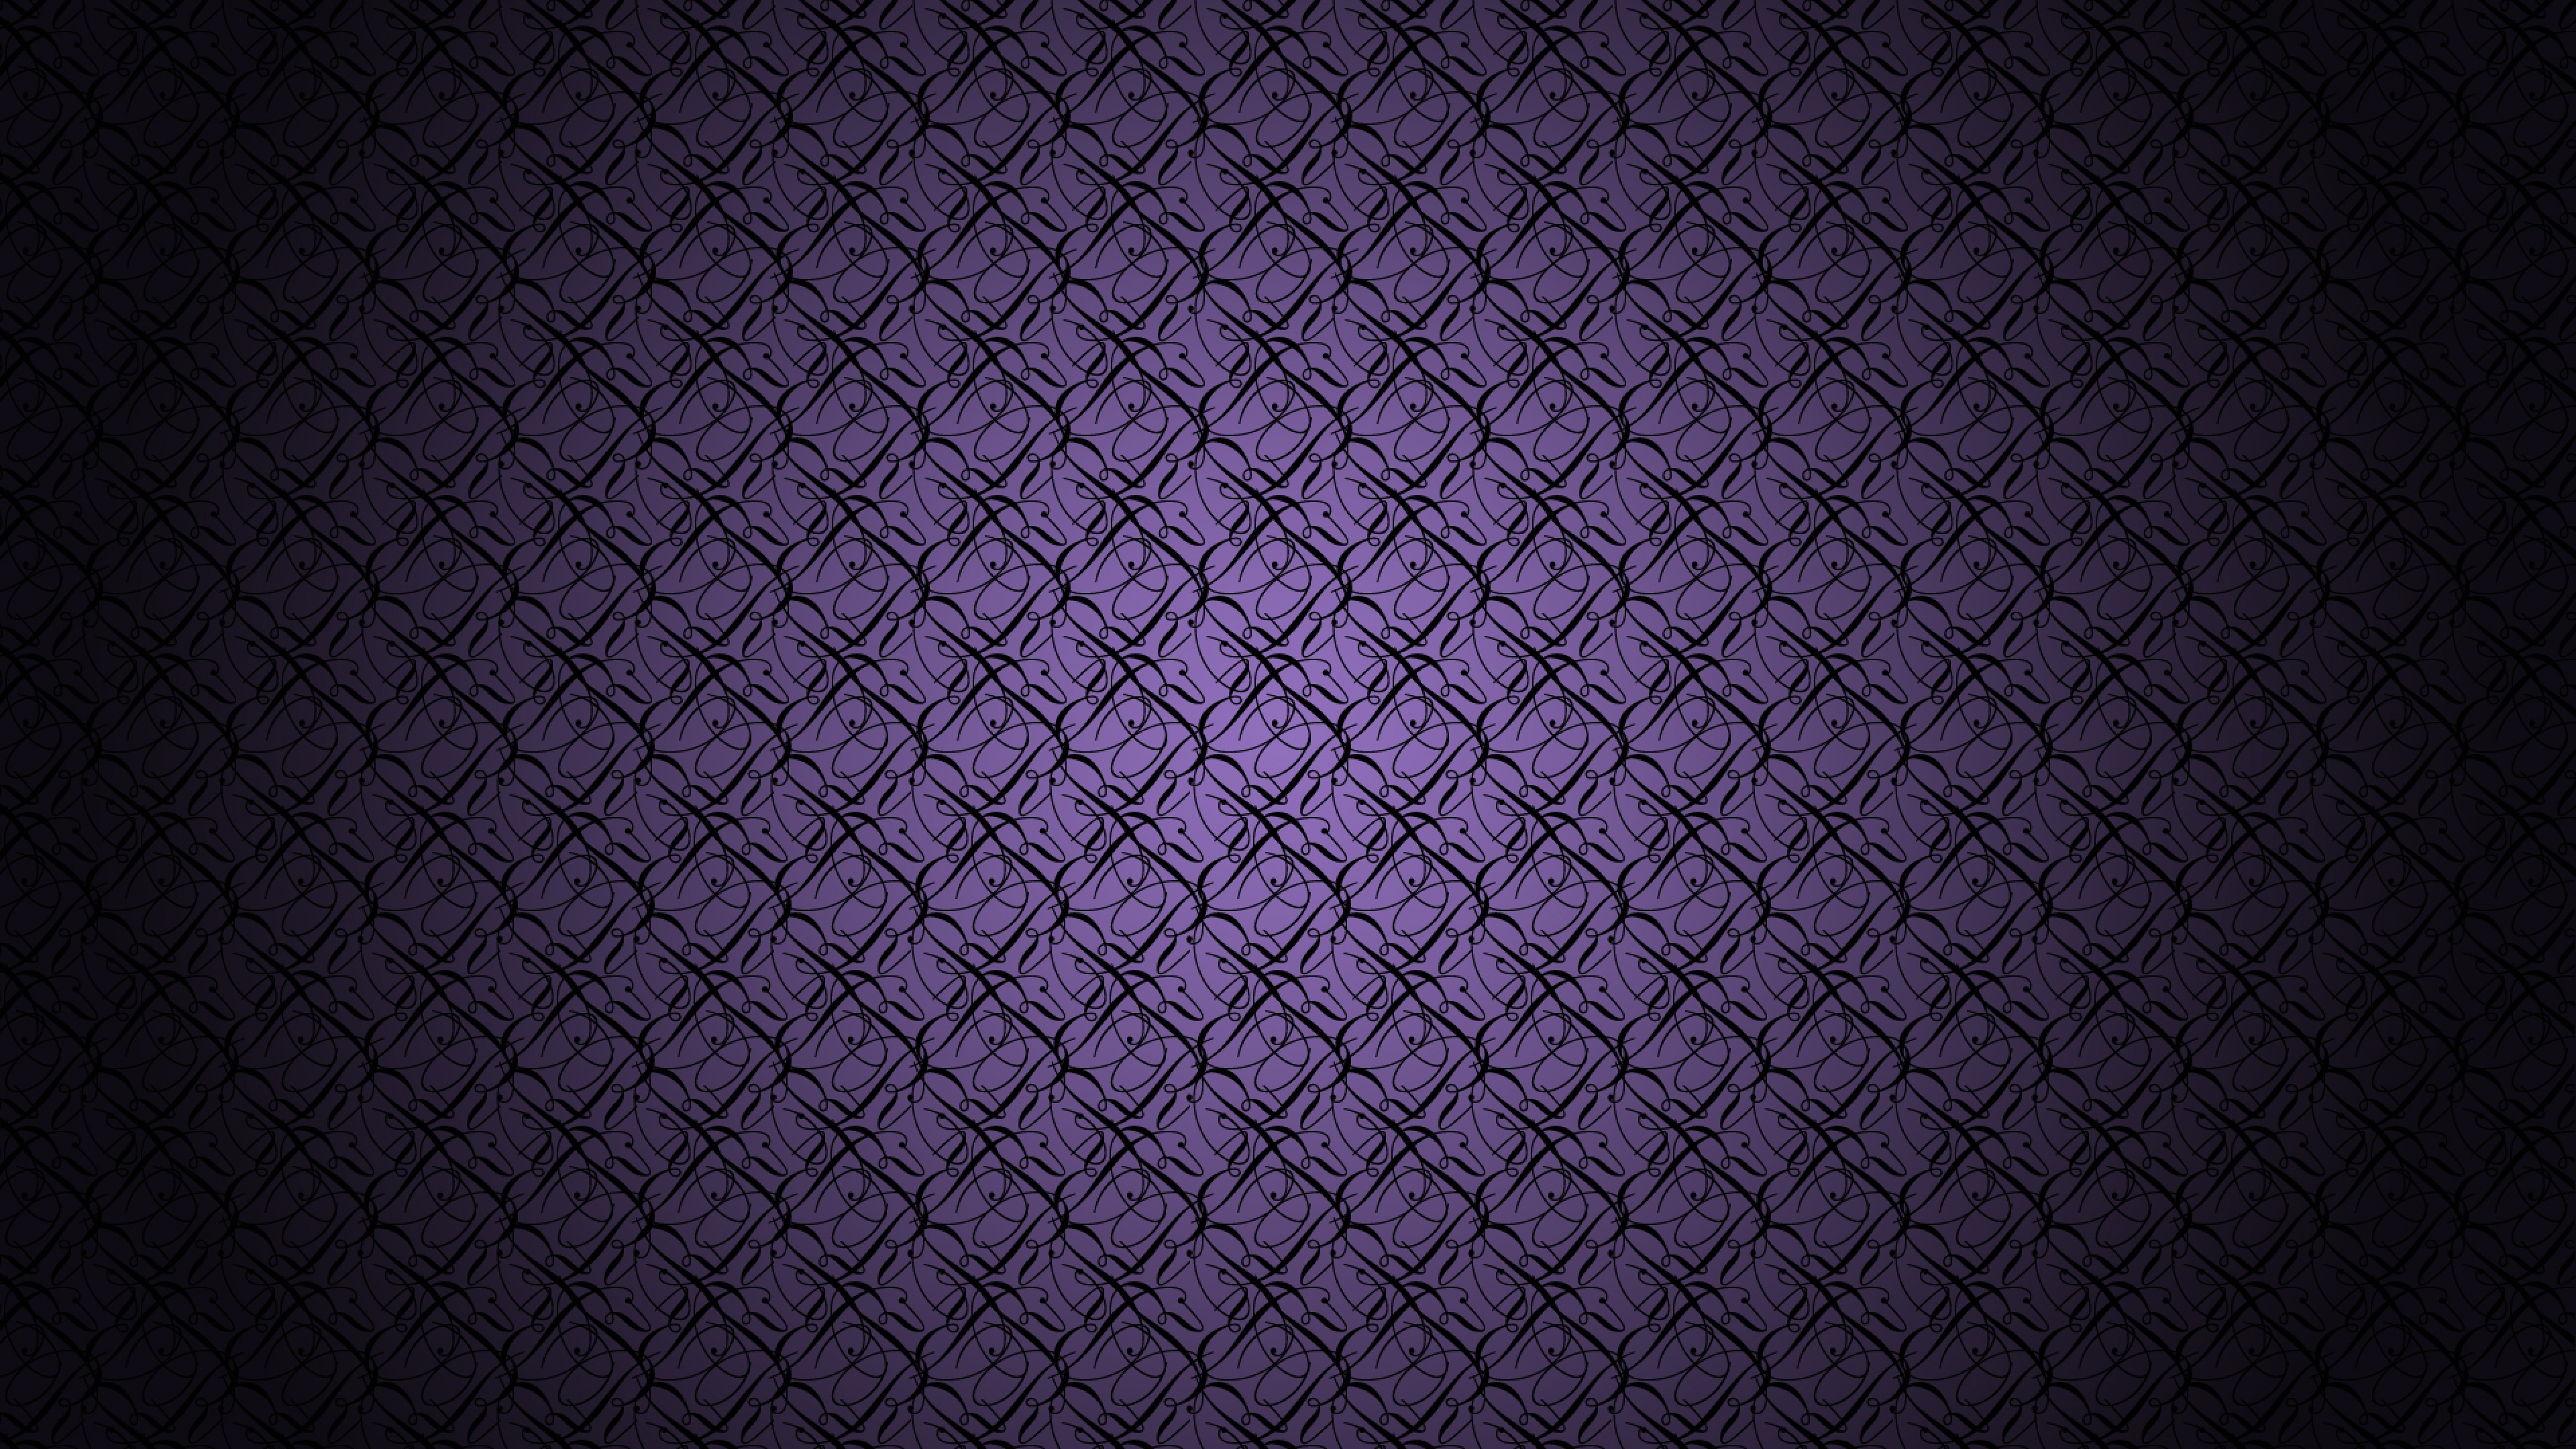 3840x2160 Wallpaper pattern, background, dark, shadow